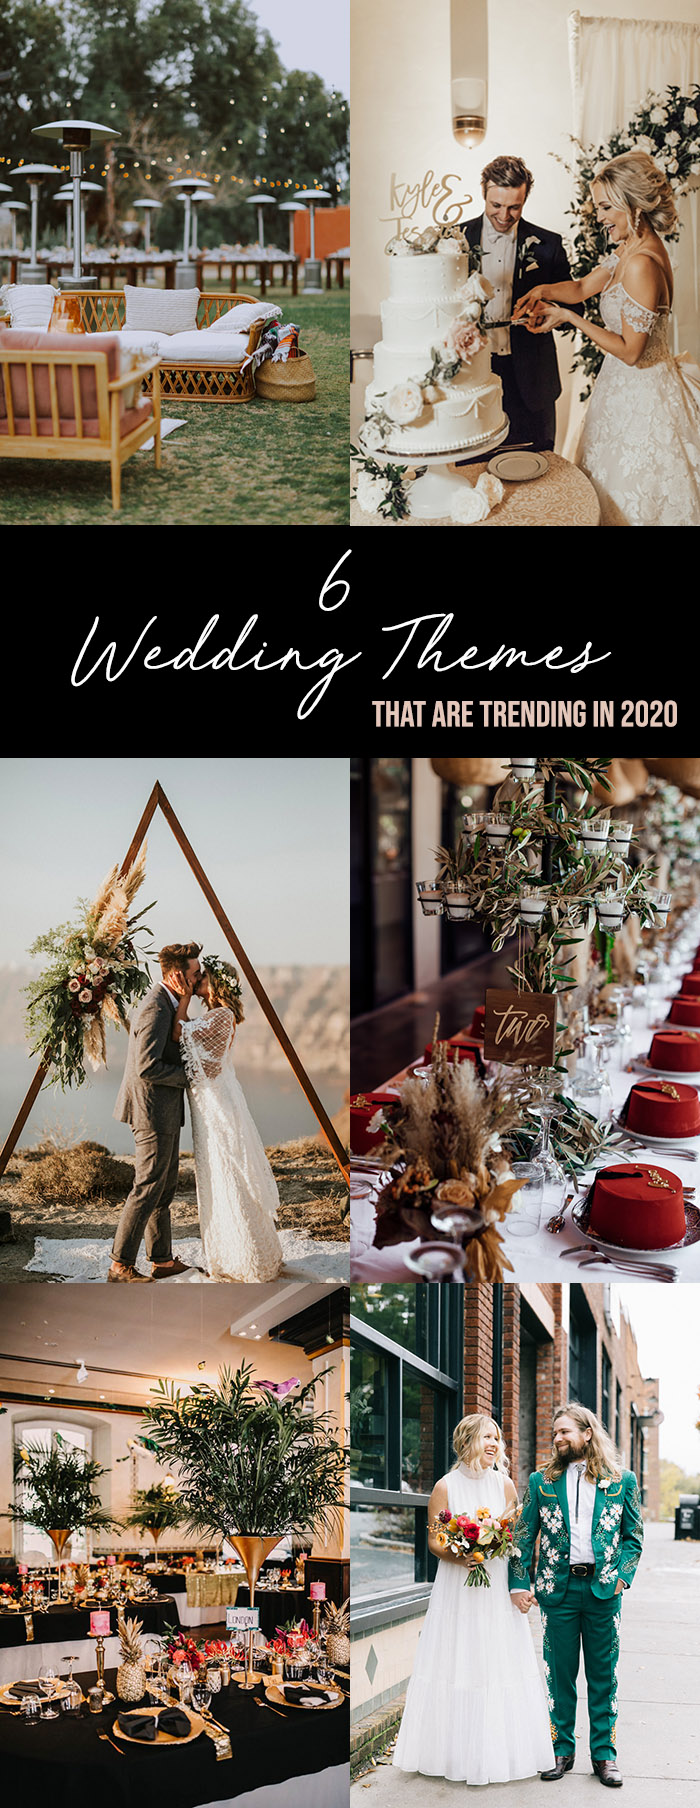 6 Wedding Themes That are Trending in 2020 Wedding